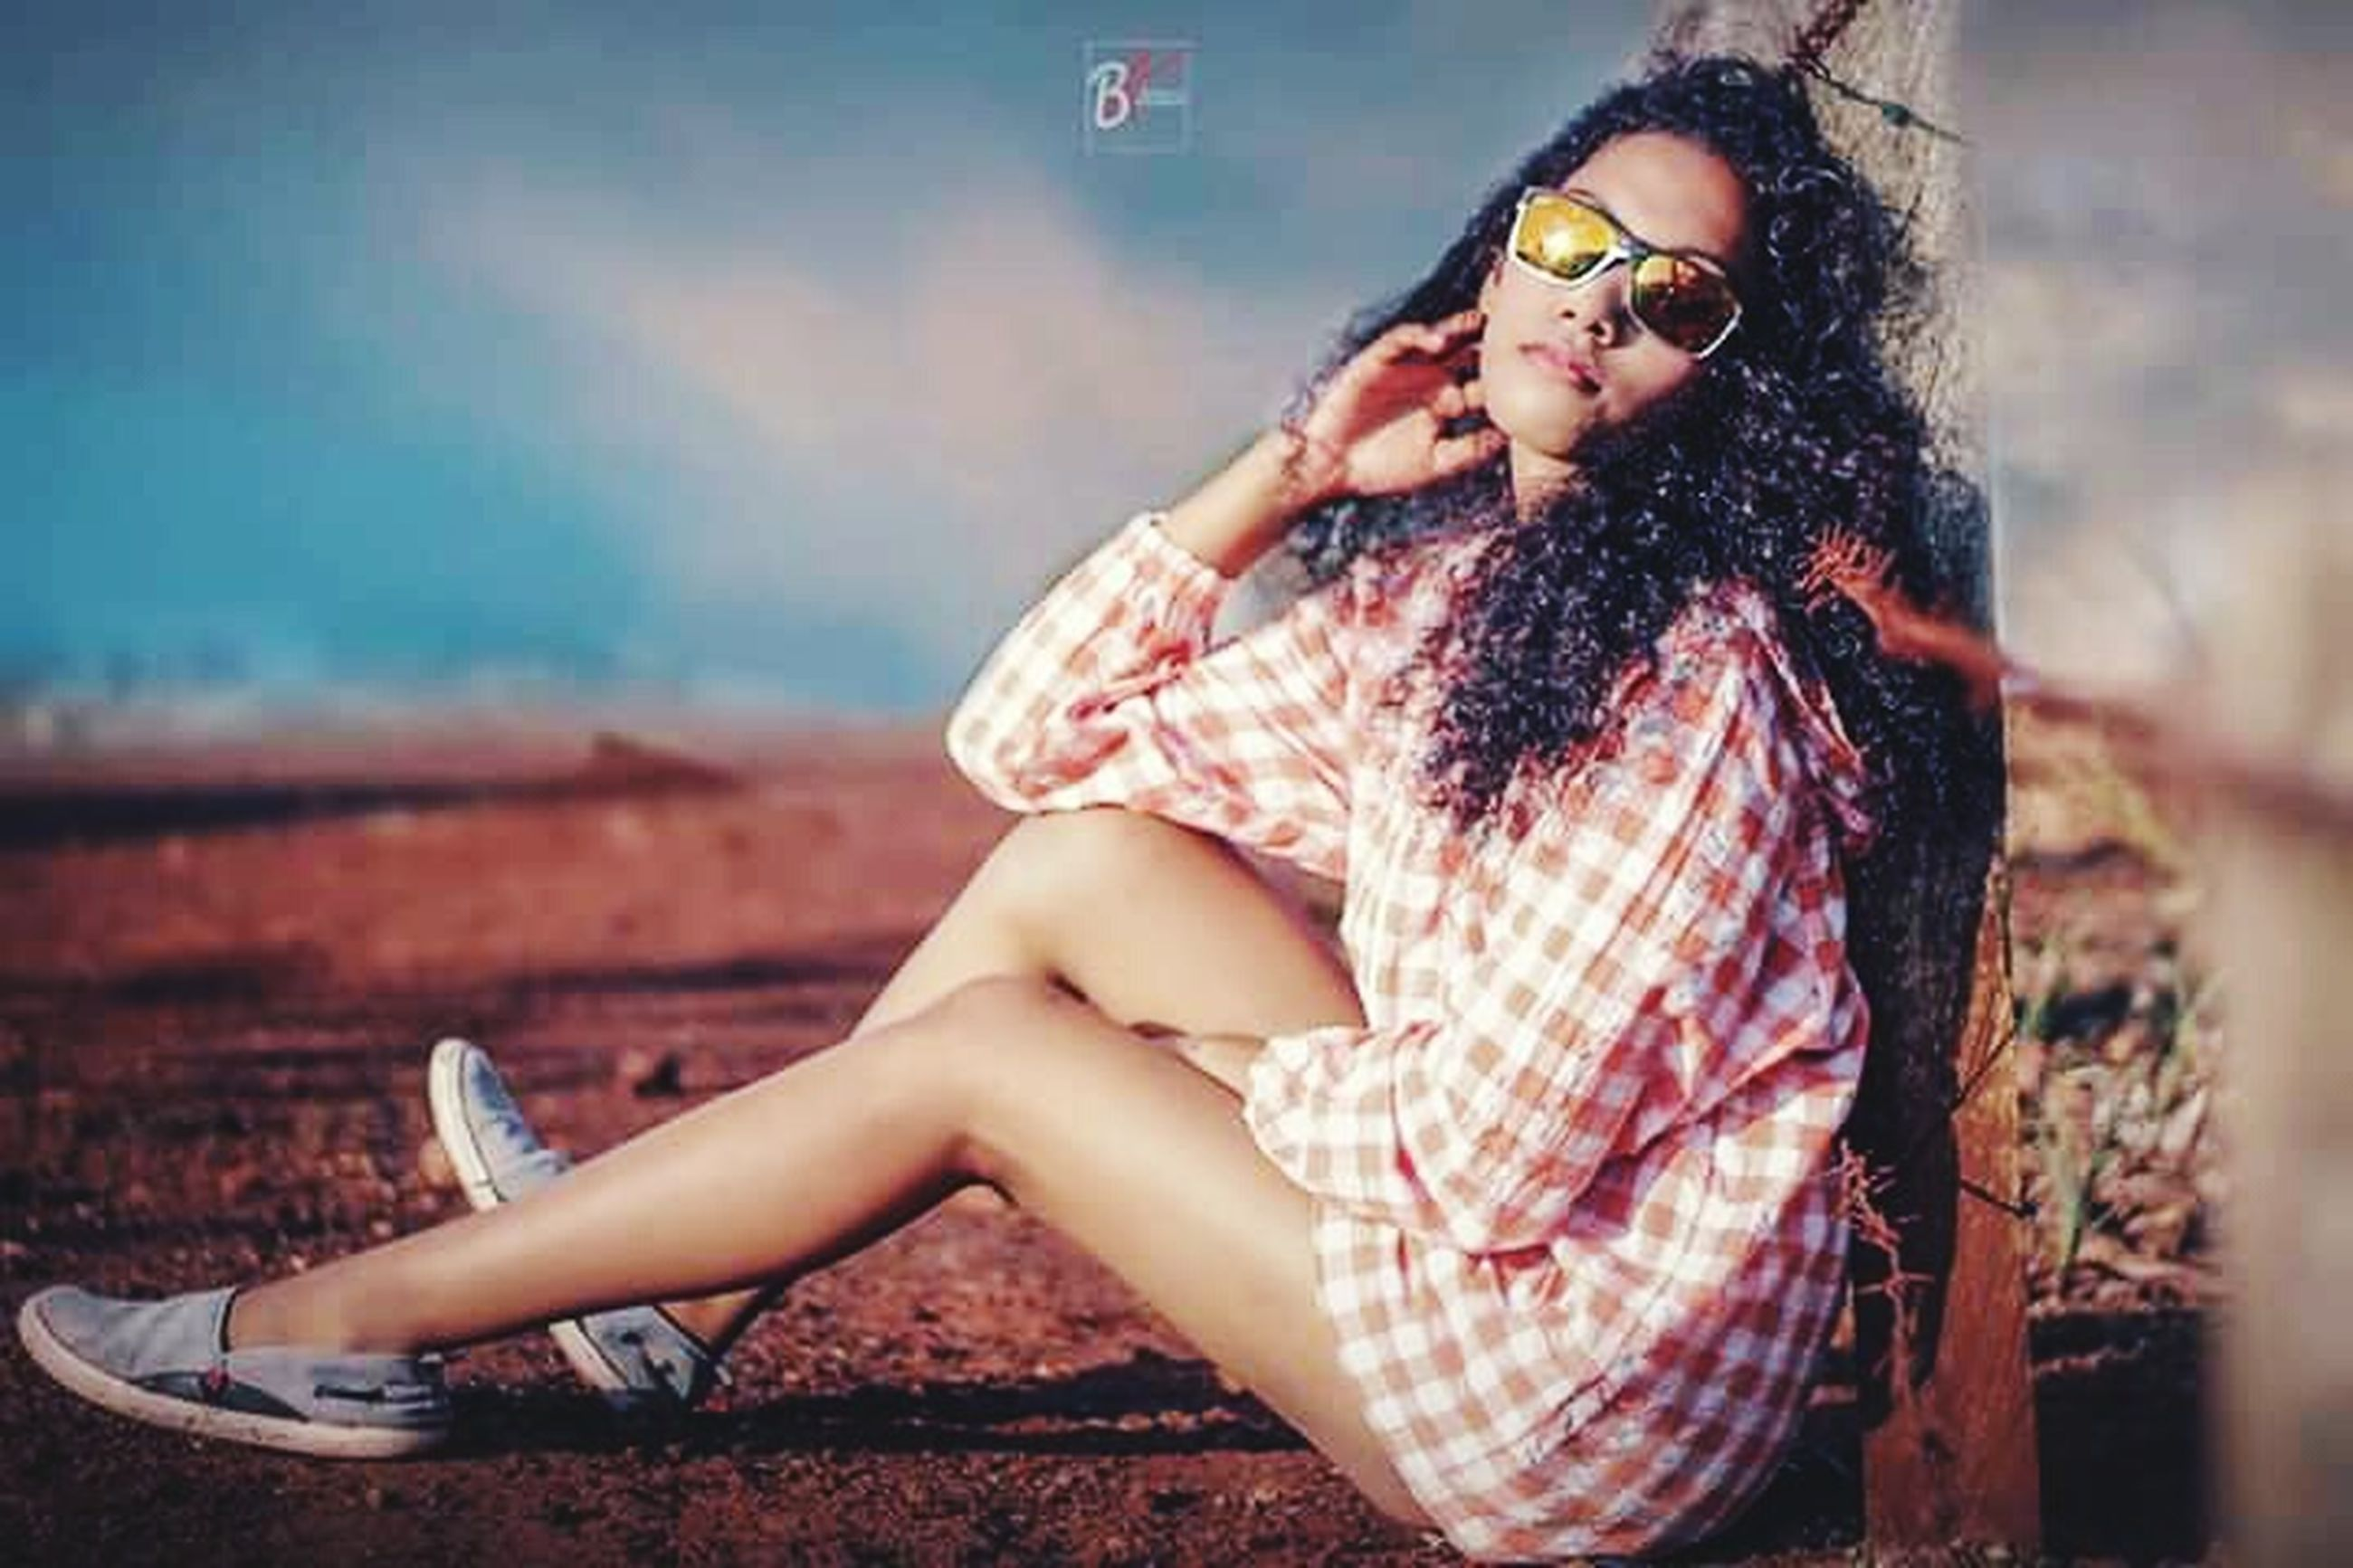 one person, fashion, young adult, sitting, full length, beauty, beautiful woman, clothing, women, adult, portrait, sunglasses, glasses, young women, nature, day, looking, looking away, hair, hairstyle, outdoors, contemplation, teenager